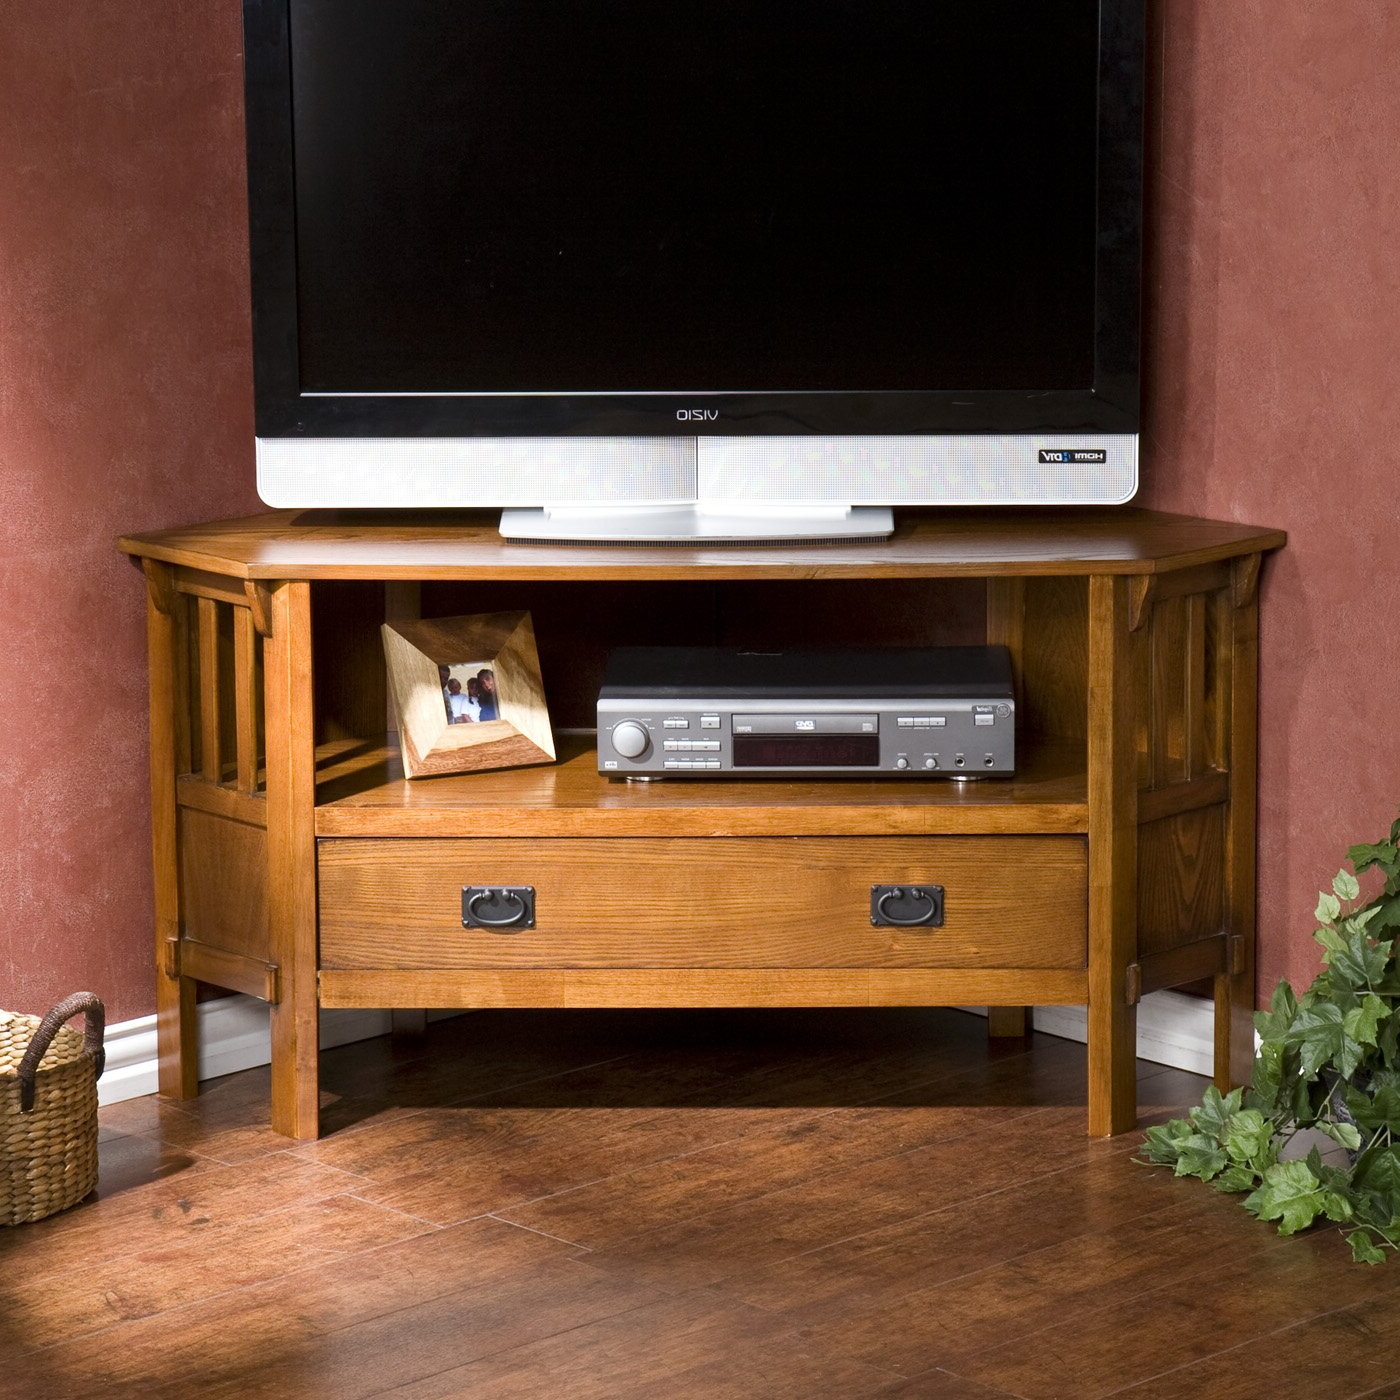 Wayfair Within Most Up To Date Priya Corner Tv Stands (View 5 of 25)